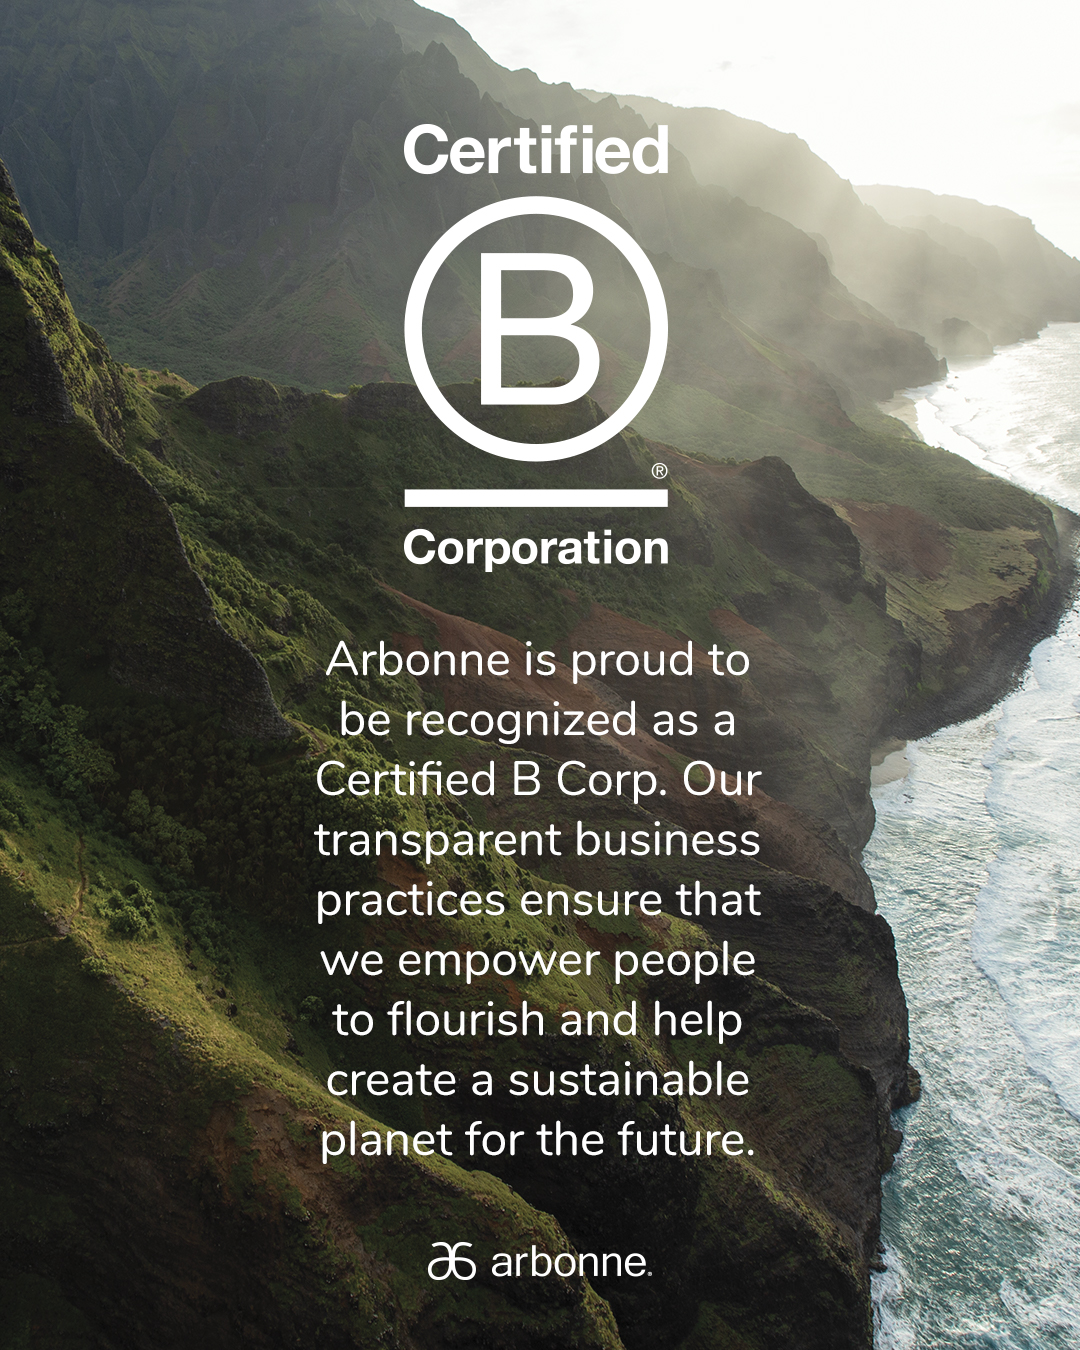 Arbonne is on a mission to empower people to flourish and help create a sustainable planet for the future.